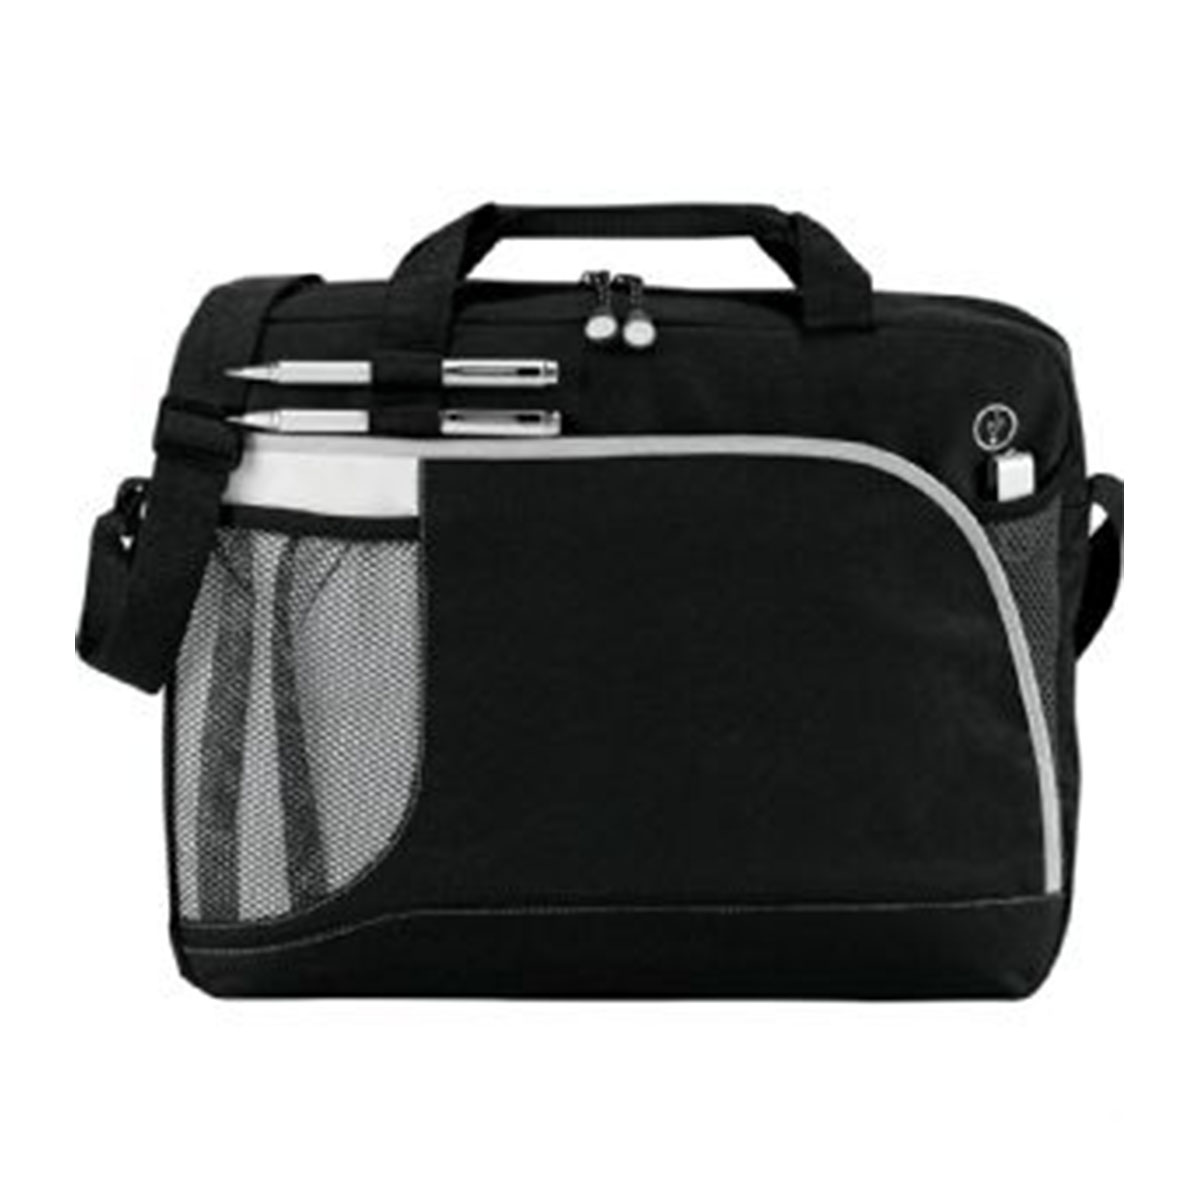 Crunch Briefcase-Black